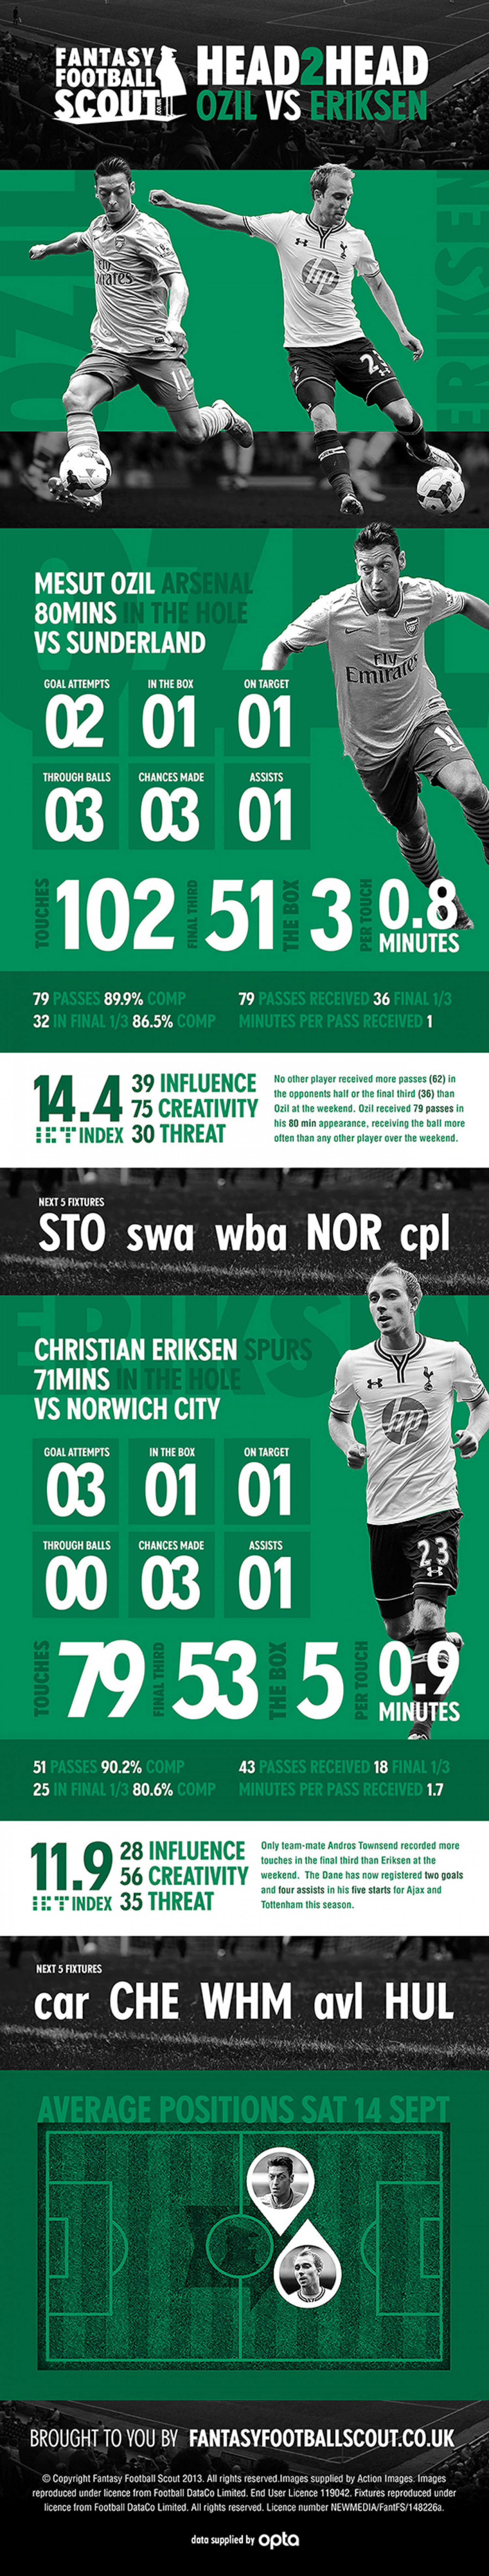 Fantasy Football Scout Head2Head: Ozil vs Eriksen Infographic